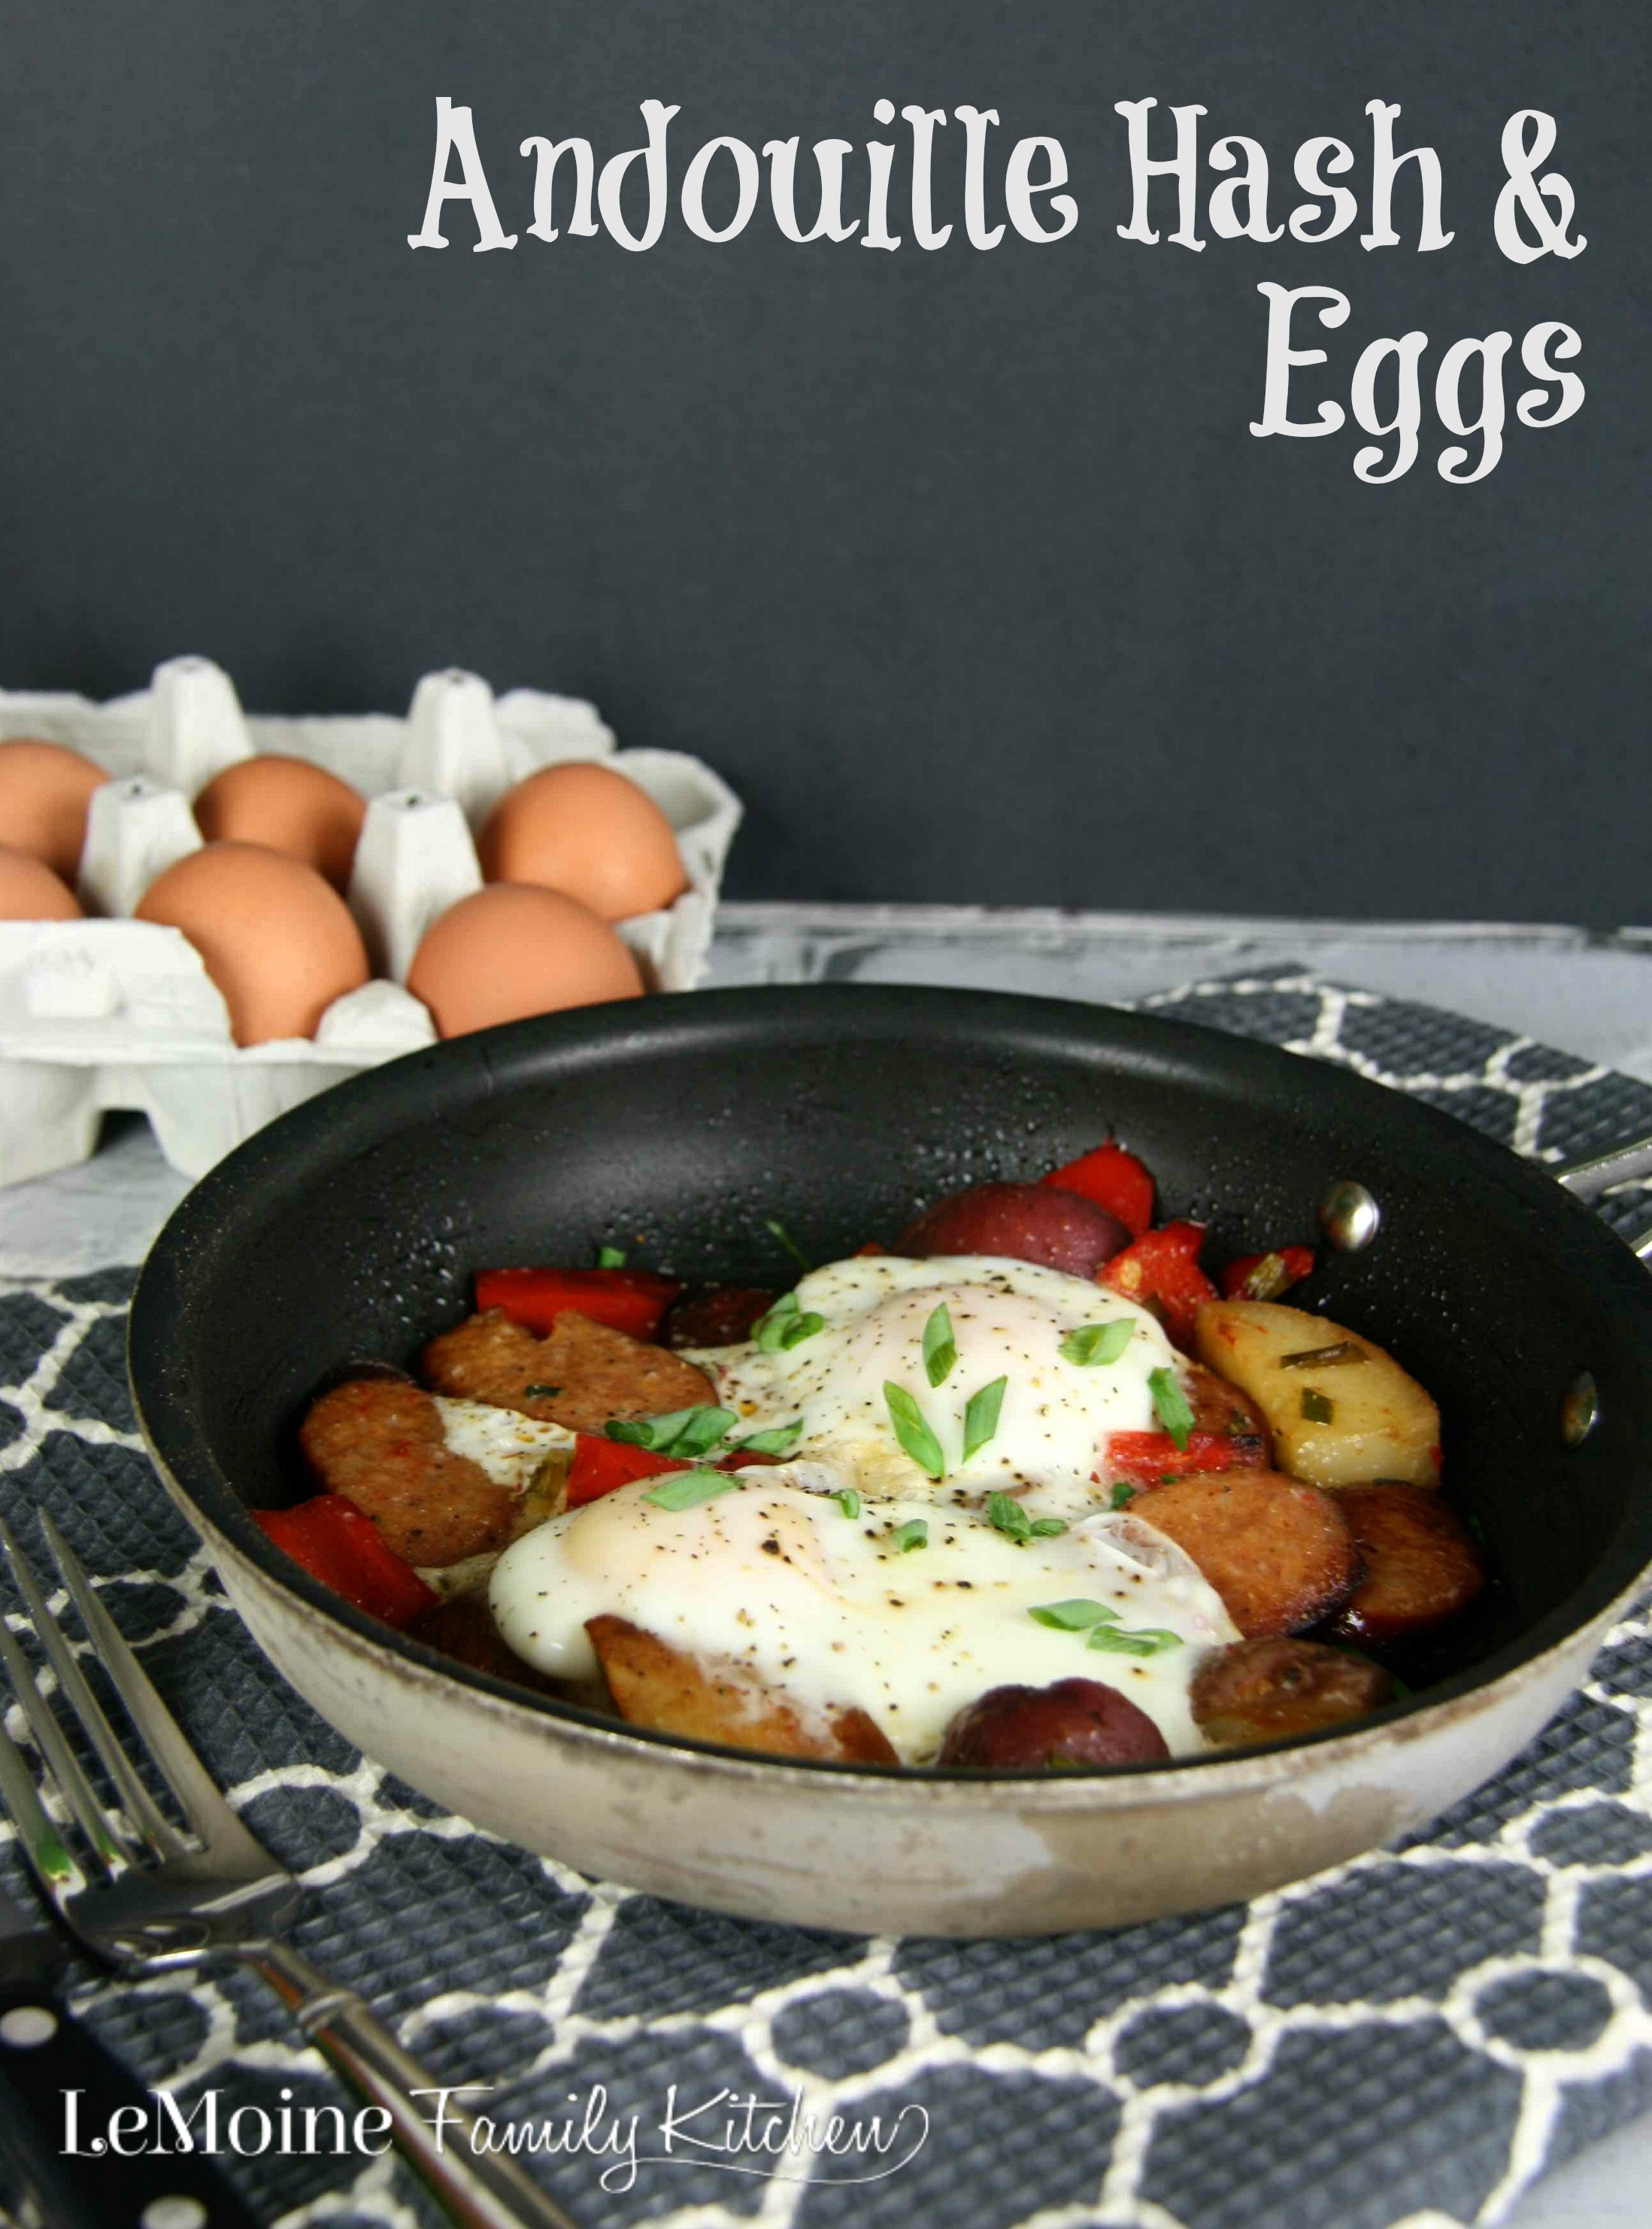 Andouille Hash & Eggs | LeMoine Family Kitchen . Roasted Andouille, Potatoes & Peppers Hash served with eggs. Perfect flavorful breakfast or brunch!